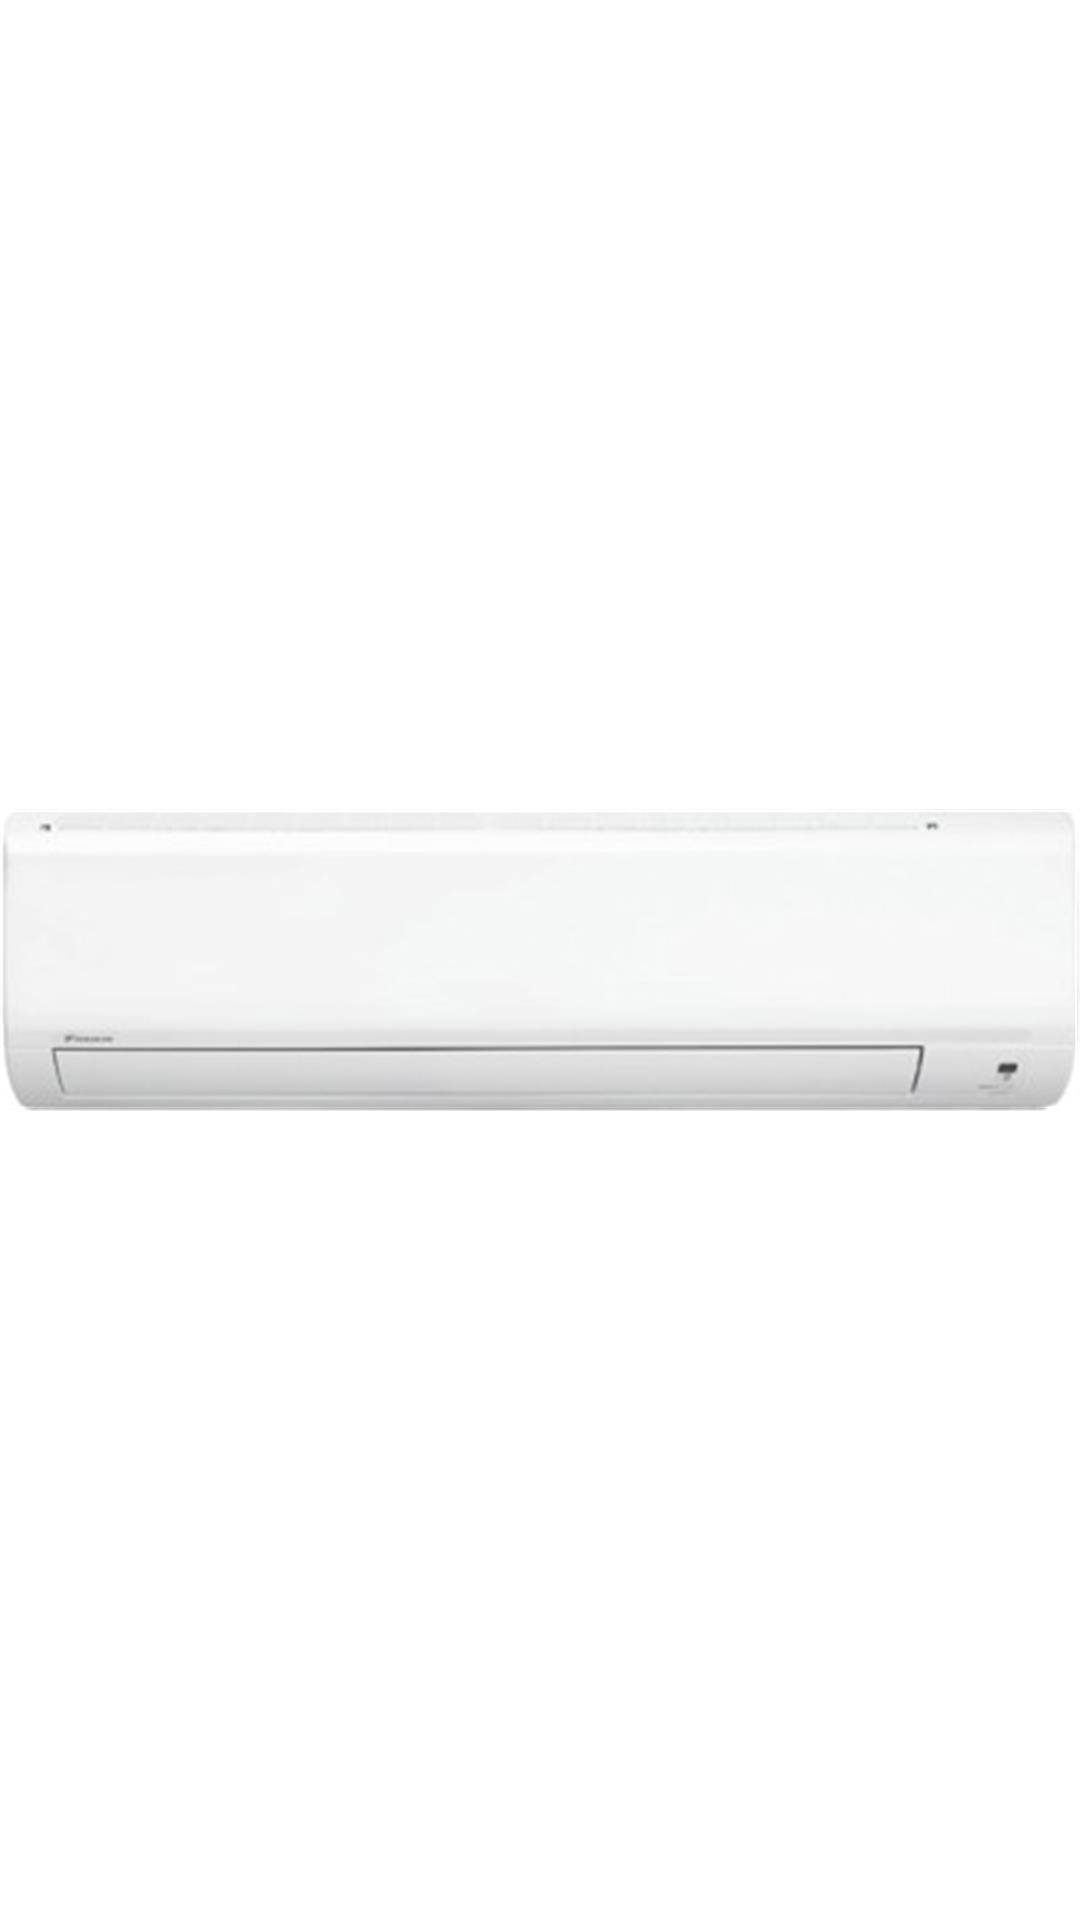 #656566 DAIKIN FTQ50QRV16 1.5 TON 2 STAR SPLIT AC Review Price  Highly Rated 2179 Daikin 2 Ton Ac wallpapers with 1080x1920 px on helpvideos.info - Air Conditioners, Air Coolers and more